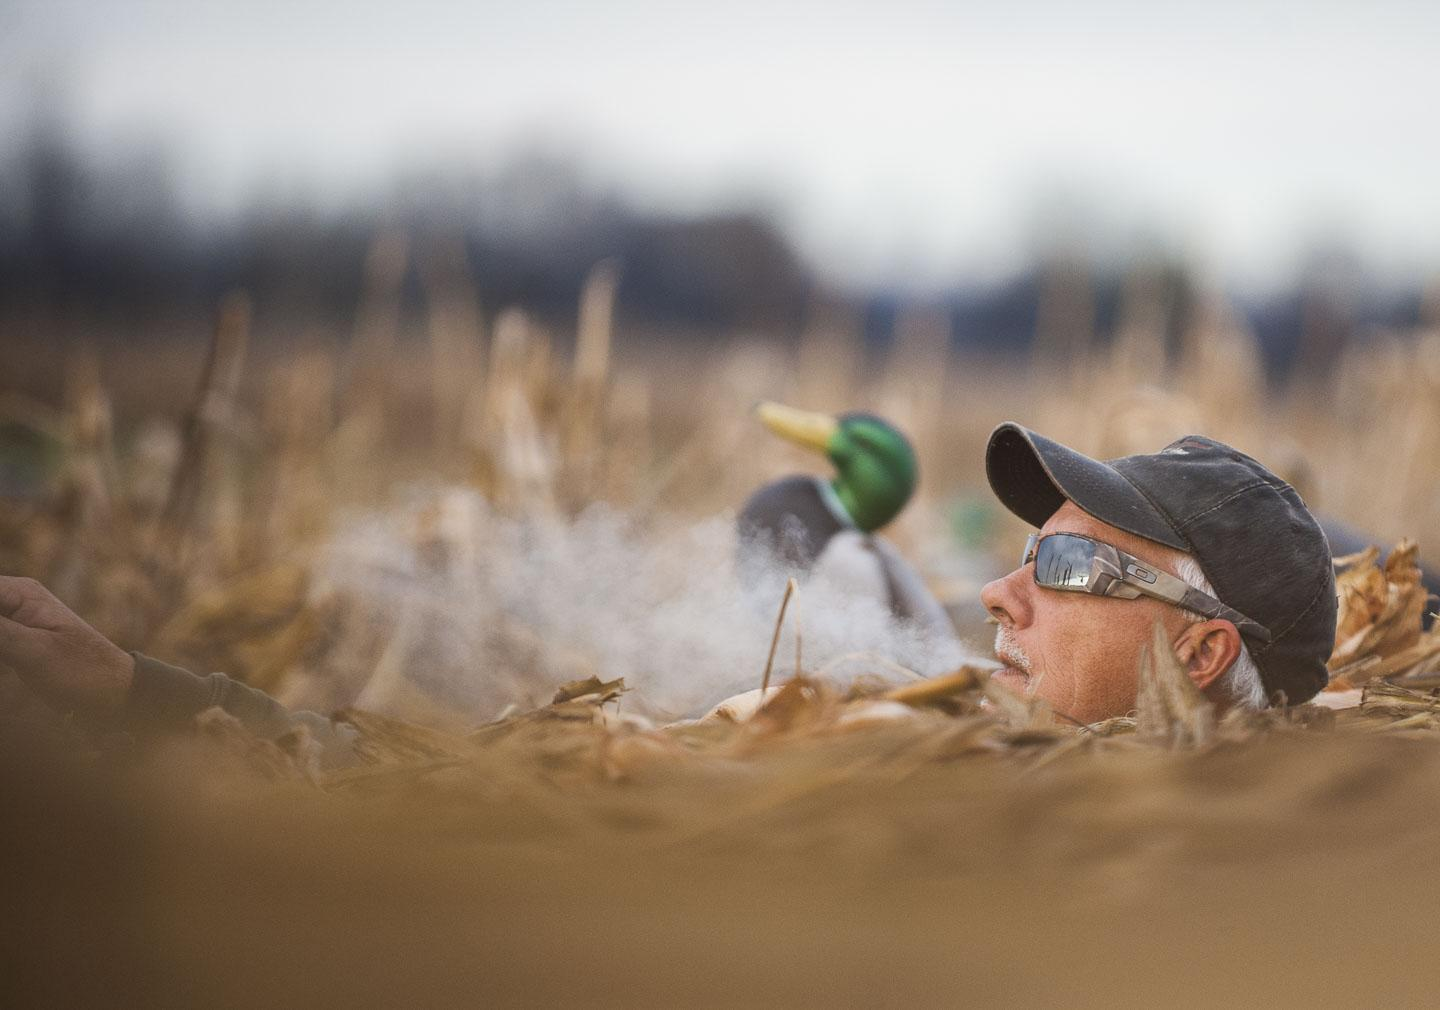 Grassy Lake Hunting Club guide Duane Smith smokes a cigarette while watching for incoming ducks Wednesday, Nov. 30, 2016, during a Wounded Warriors duck hunt in Jonesboro. (Ryan Michalesko | @photosbylesko)